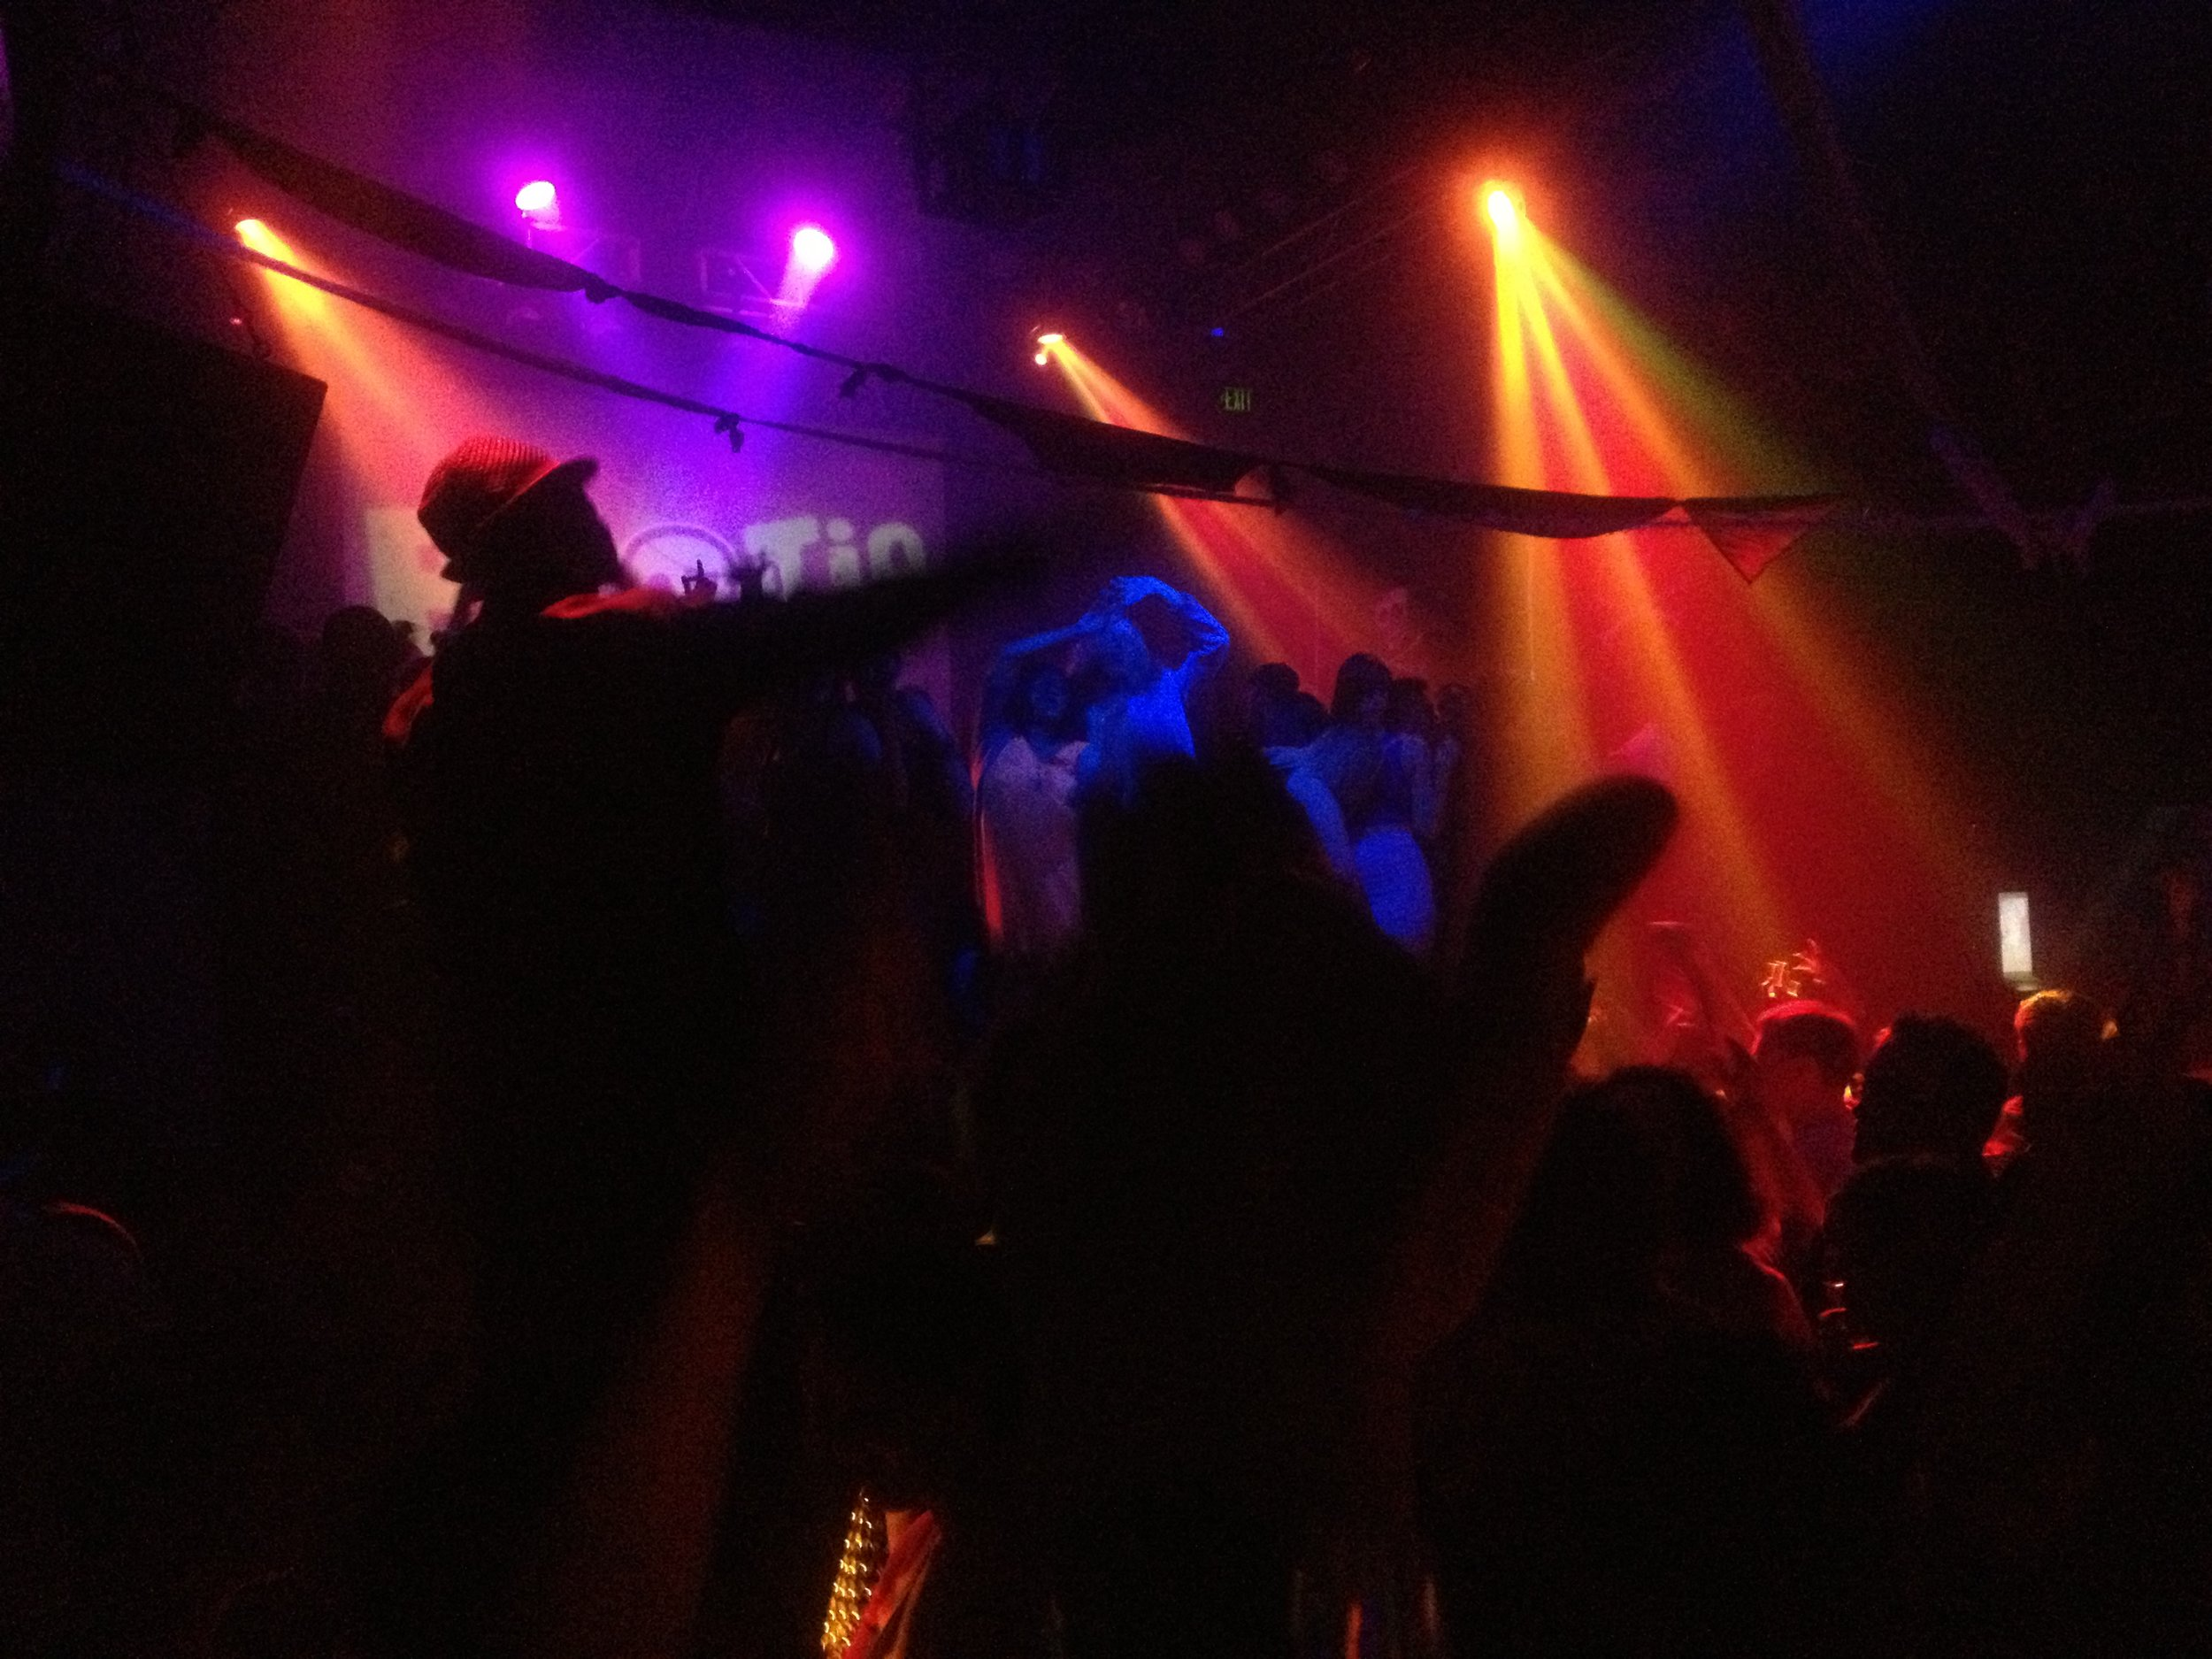 A little snapshot of Bootie SF. I won't lie, I may or may not have danced on the podium.